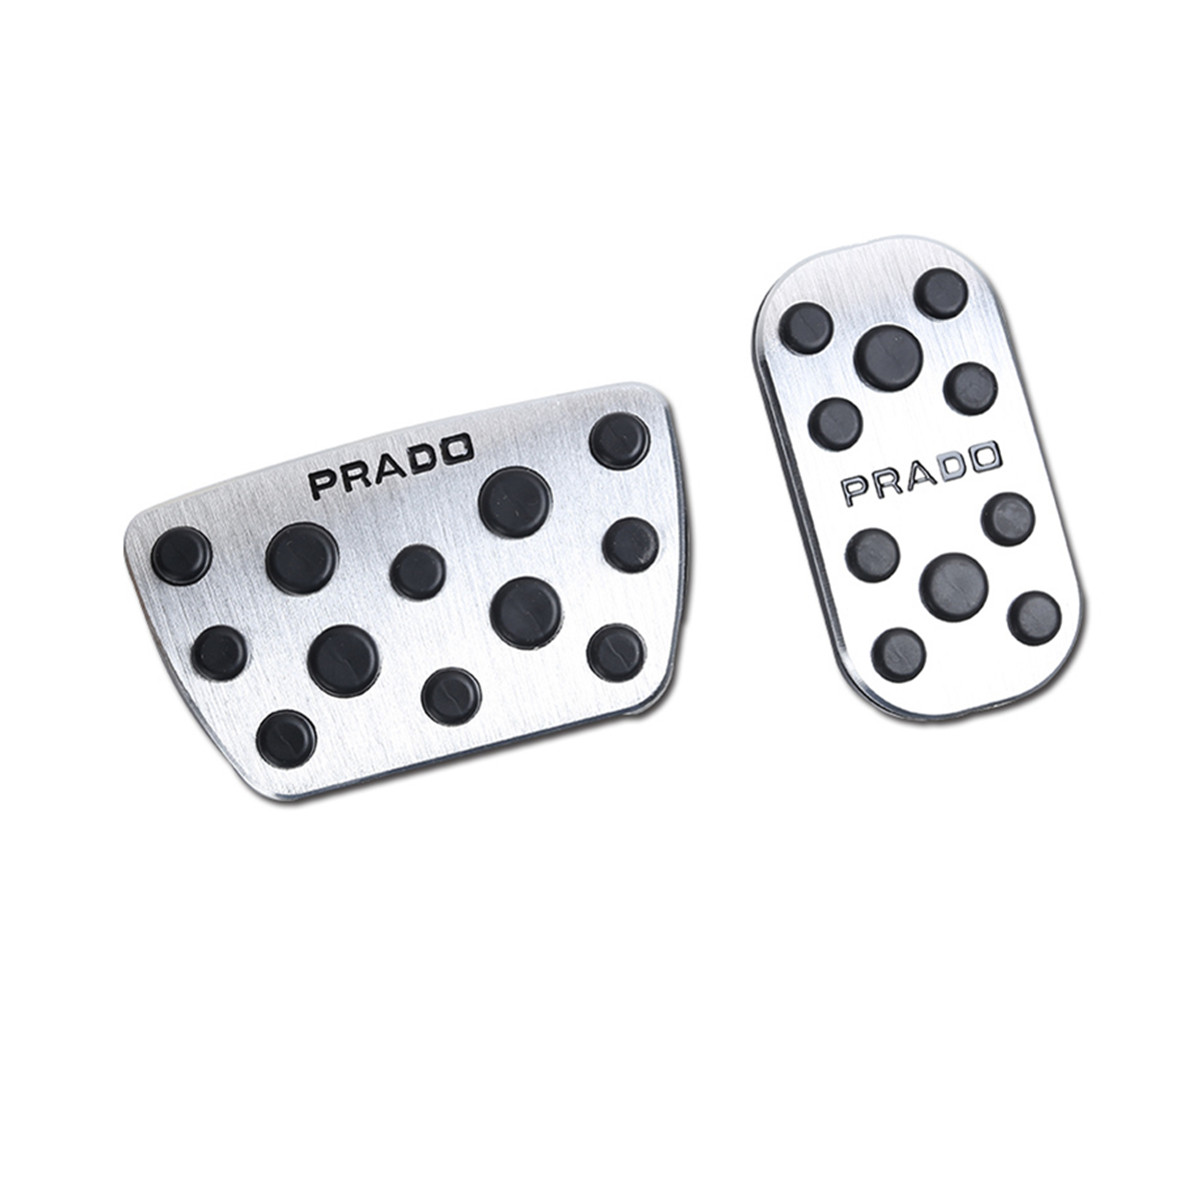 Car Accelerator and Brake Pedals for Toyota Land Cruiser Prado 150 2010 2012 2013 2014 2015 2016 2017 2018 AT Accessories-in Chromium Styling from Automobiles & Motorcycles